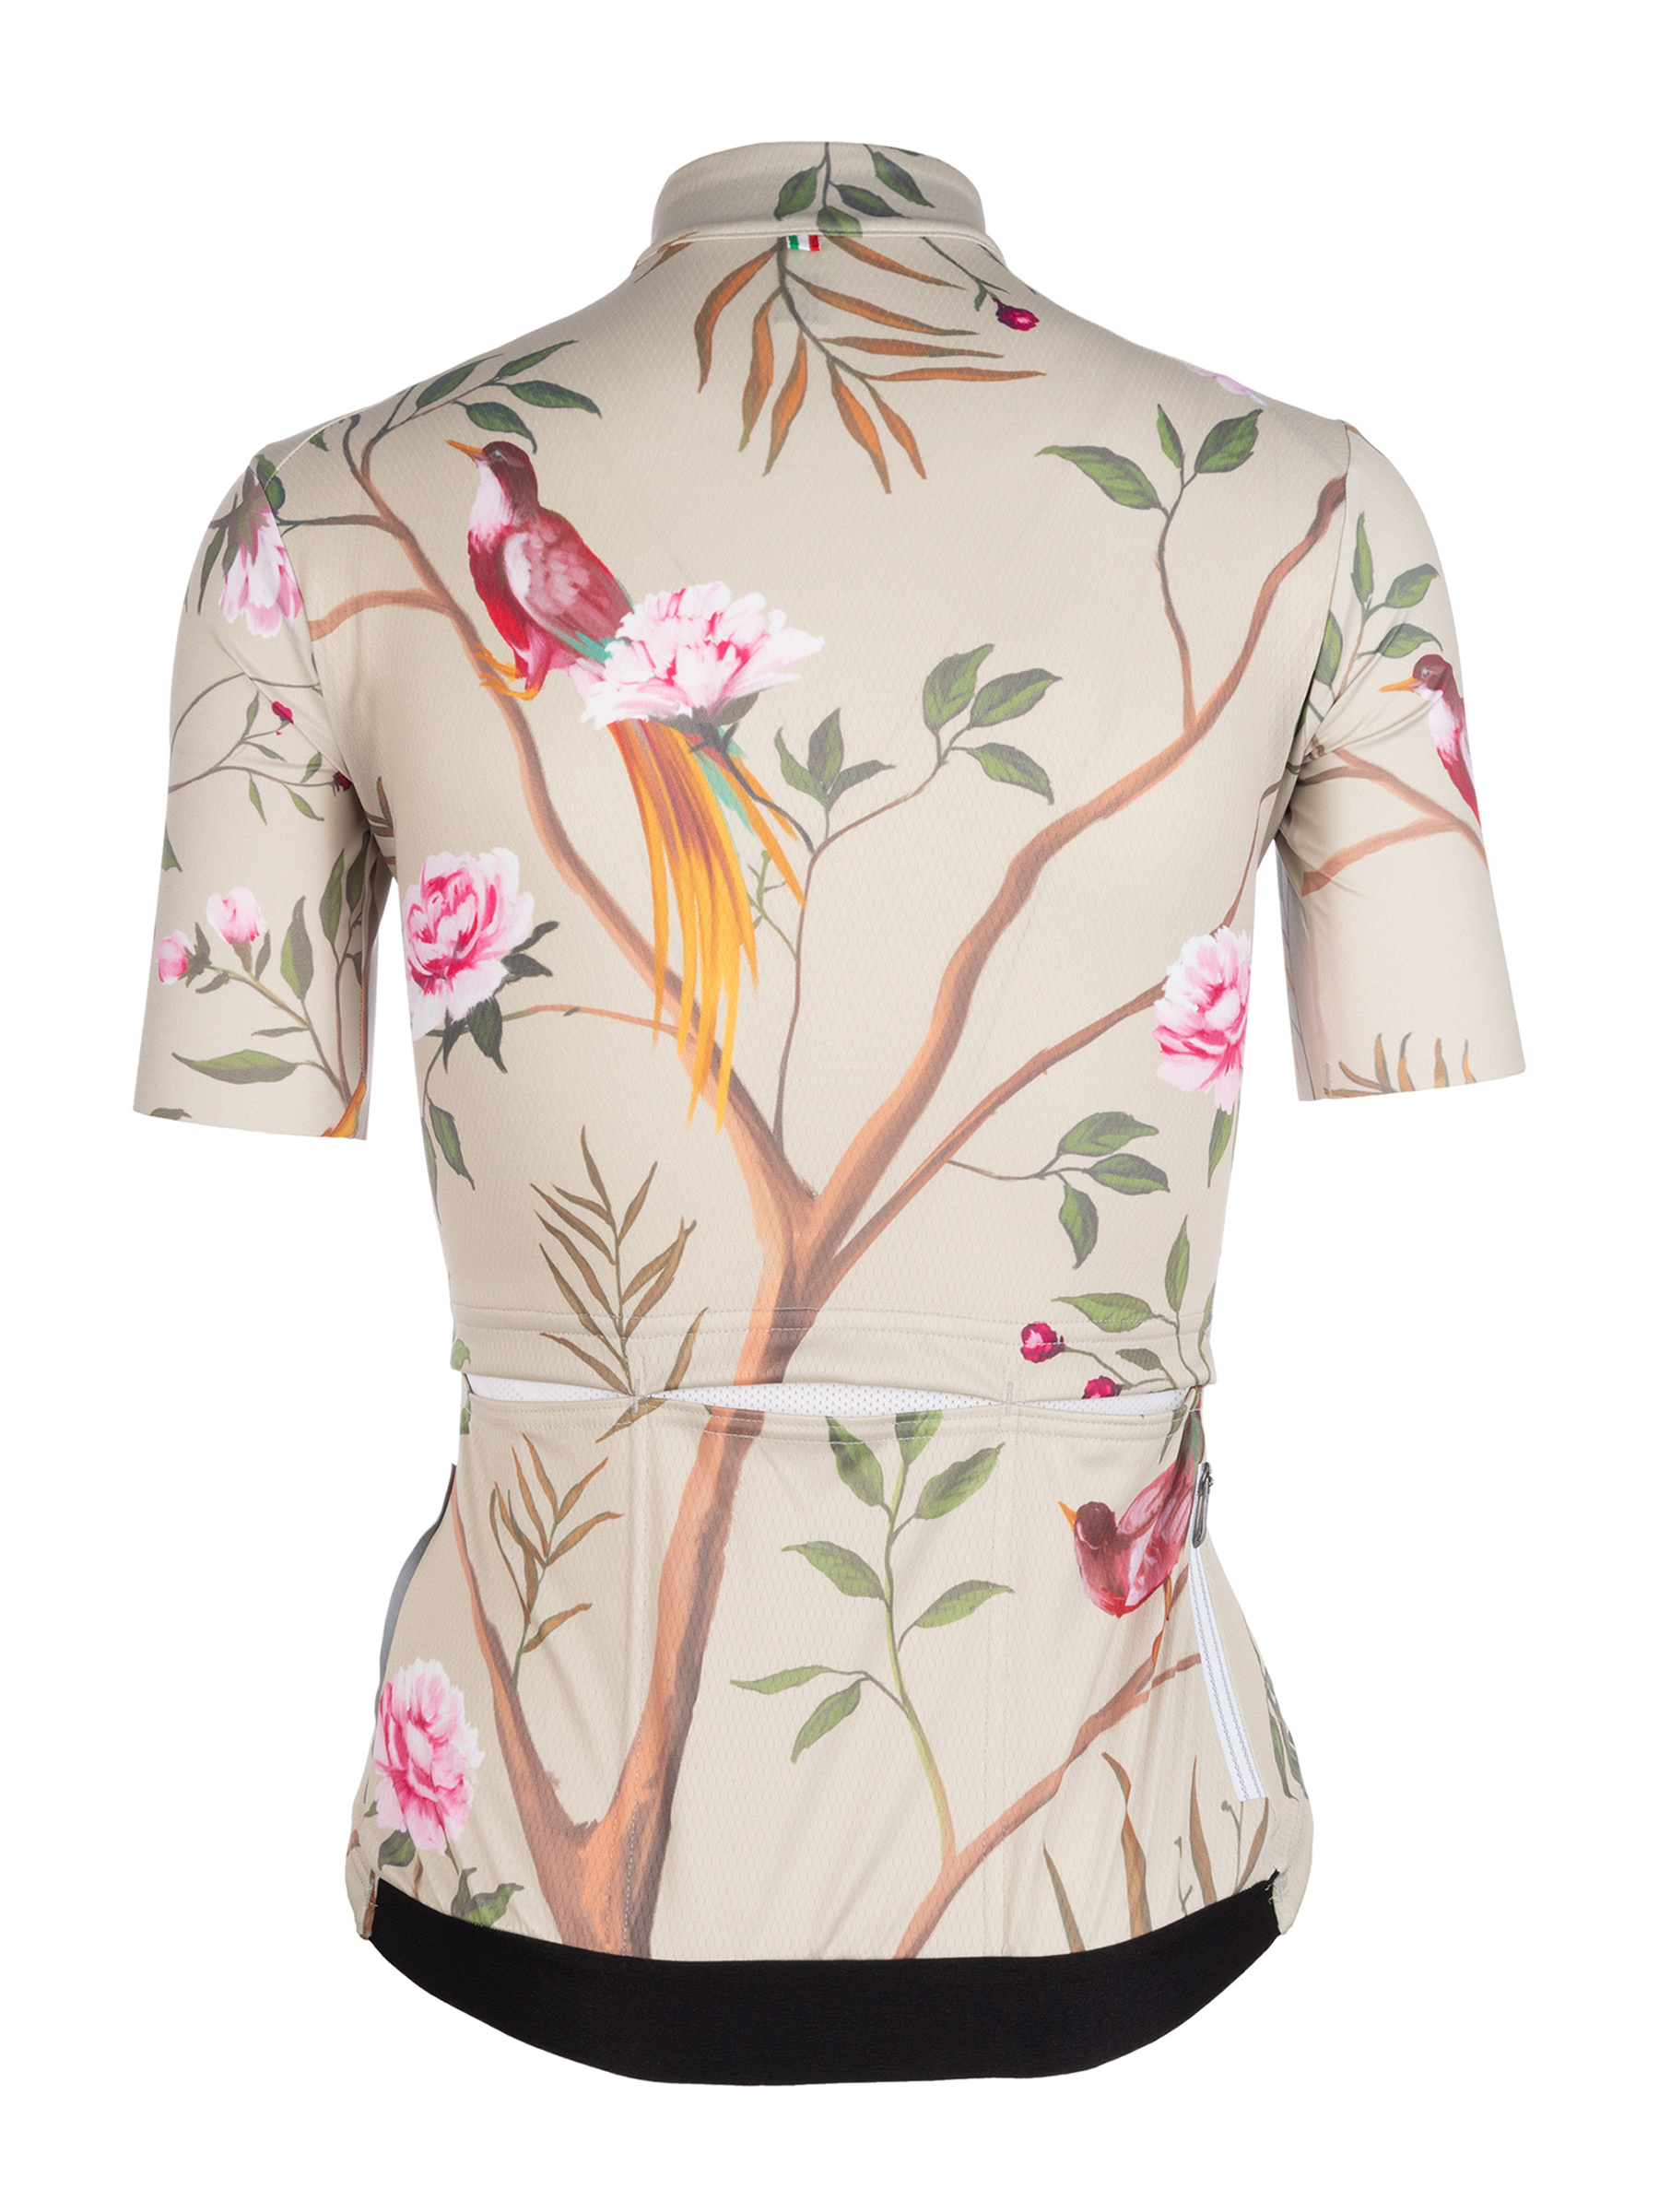 Jersey Short Sleeve G1 Woman Japanese Garden